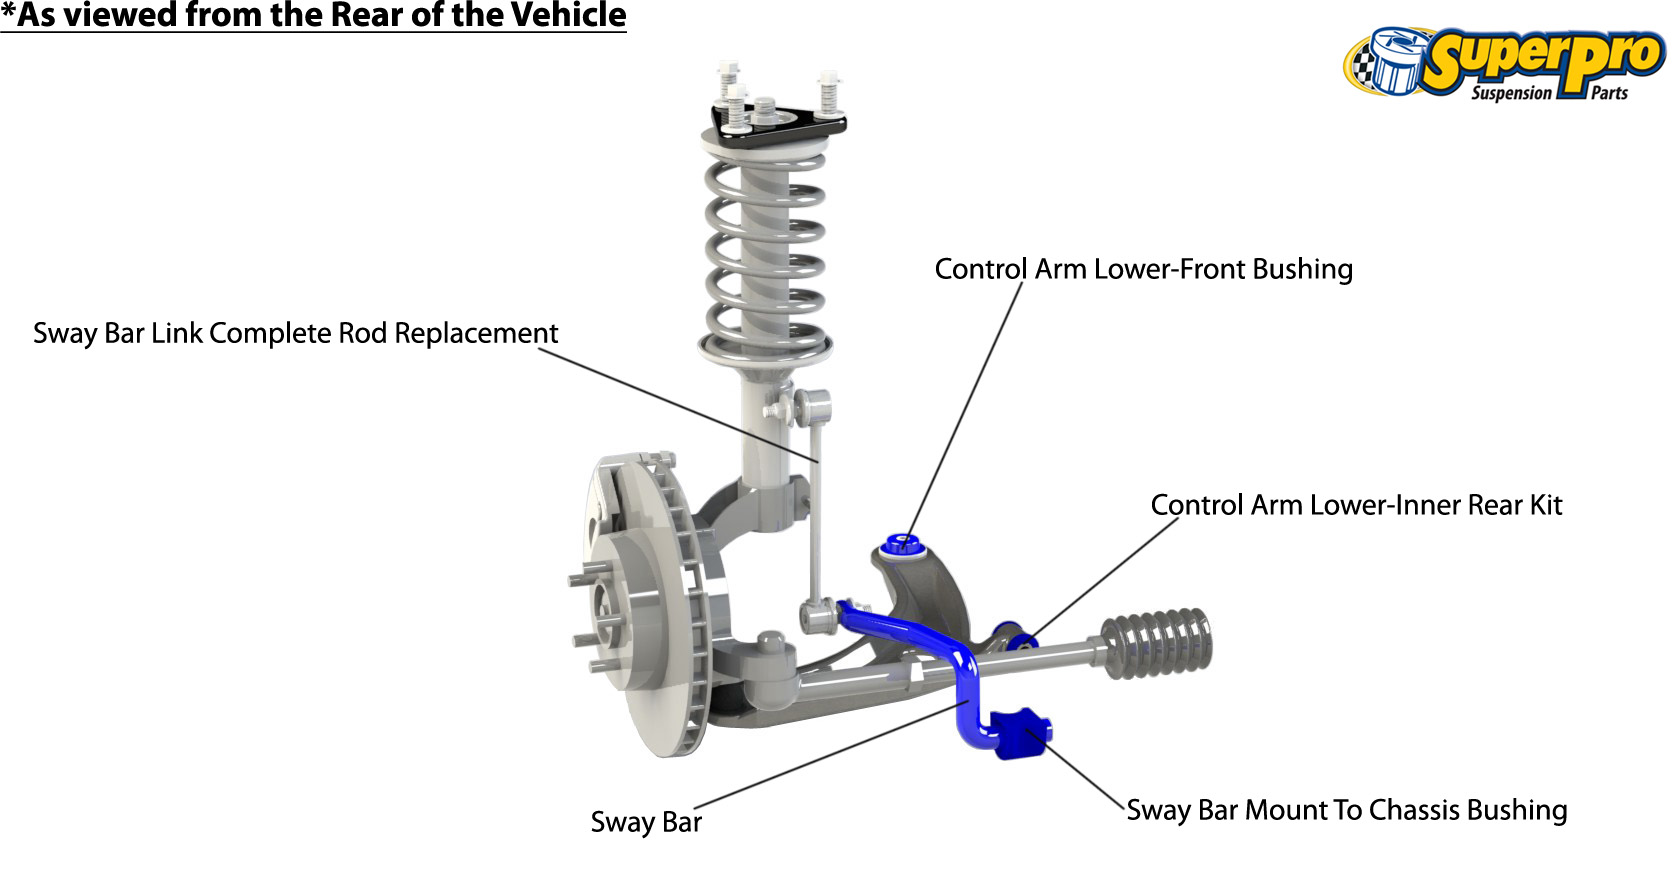 532045 Bmw E36 Rear Suspension Diagram moreover Bmw 3 Series Suspension Diagram as well 2007 Dodge Caliber Suspension Diagram moreover Bmw E36 Suspension Diagram besides E30 Suspension Diagram. on e46 front suspension diagram